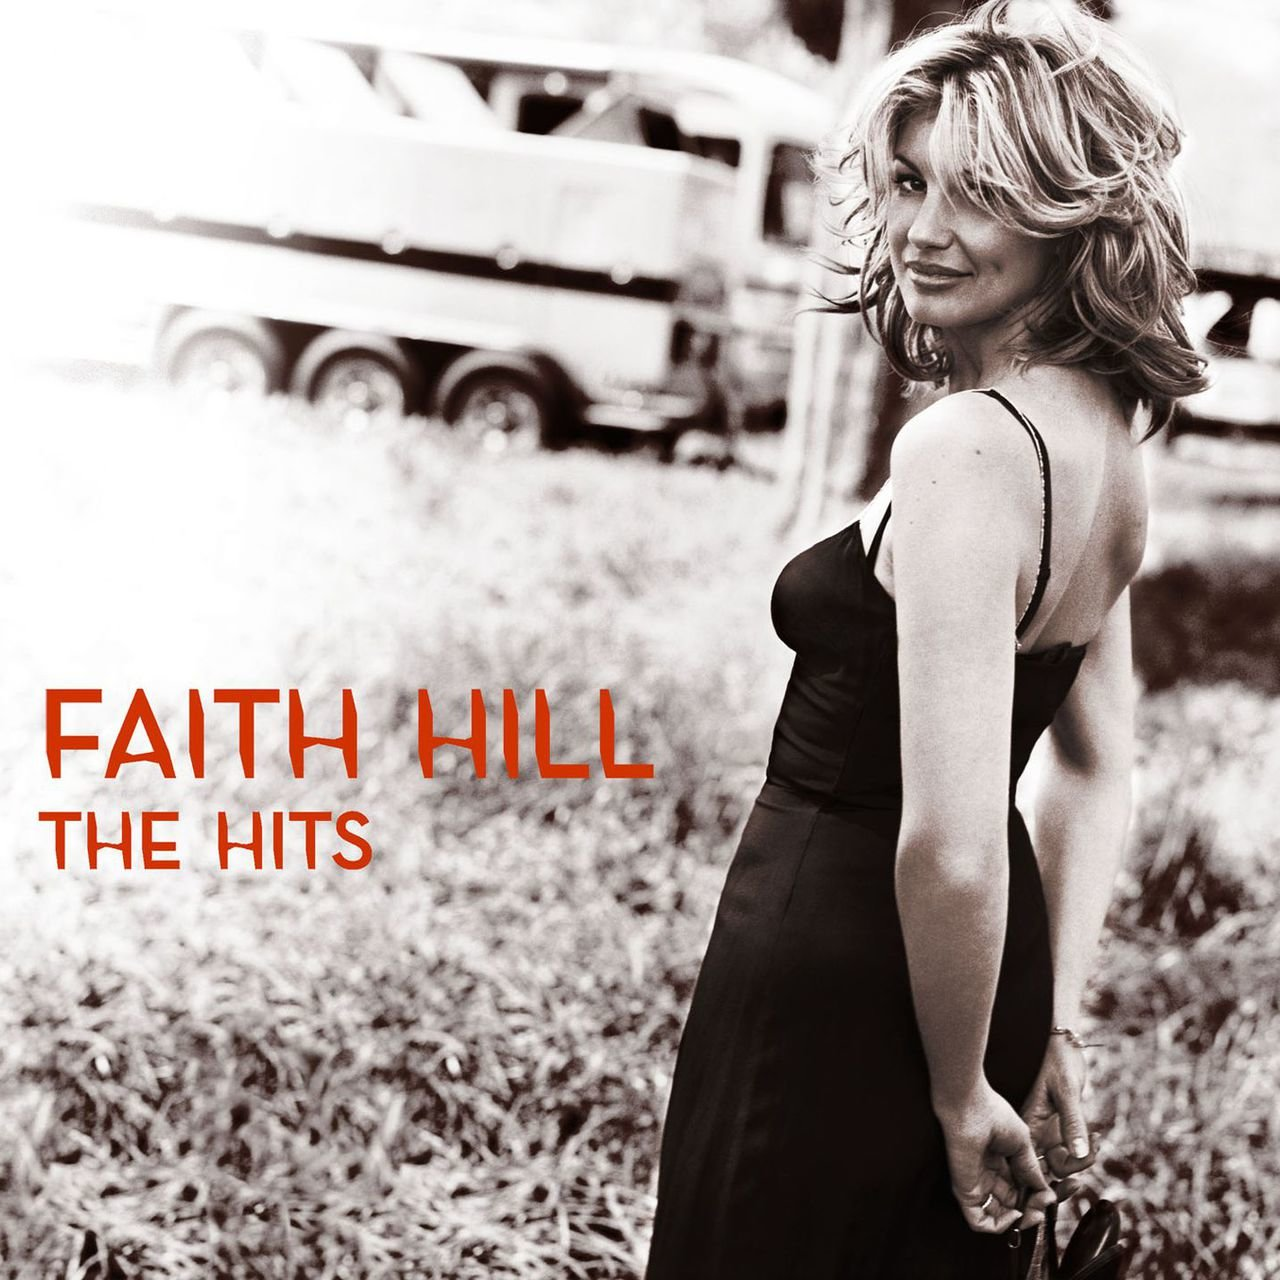 Faith Hill The Hits Album Faith Hill  The Hits  US